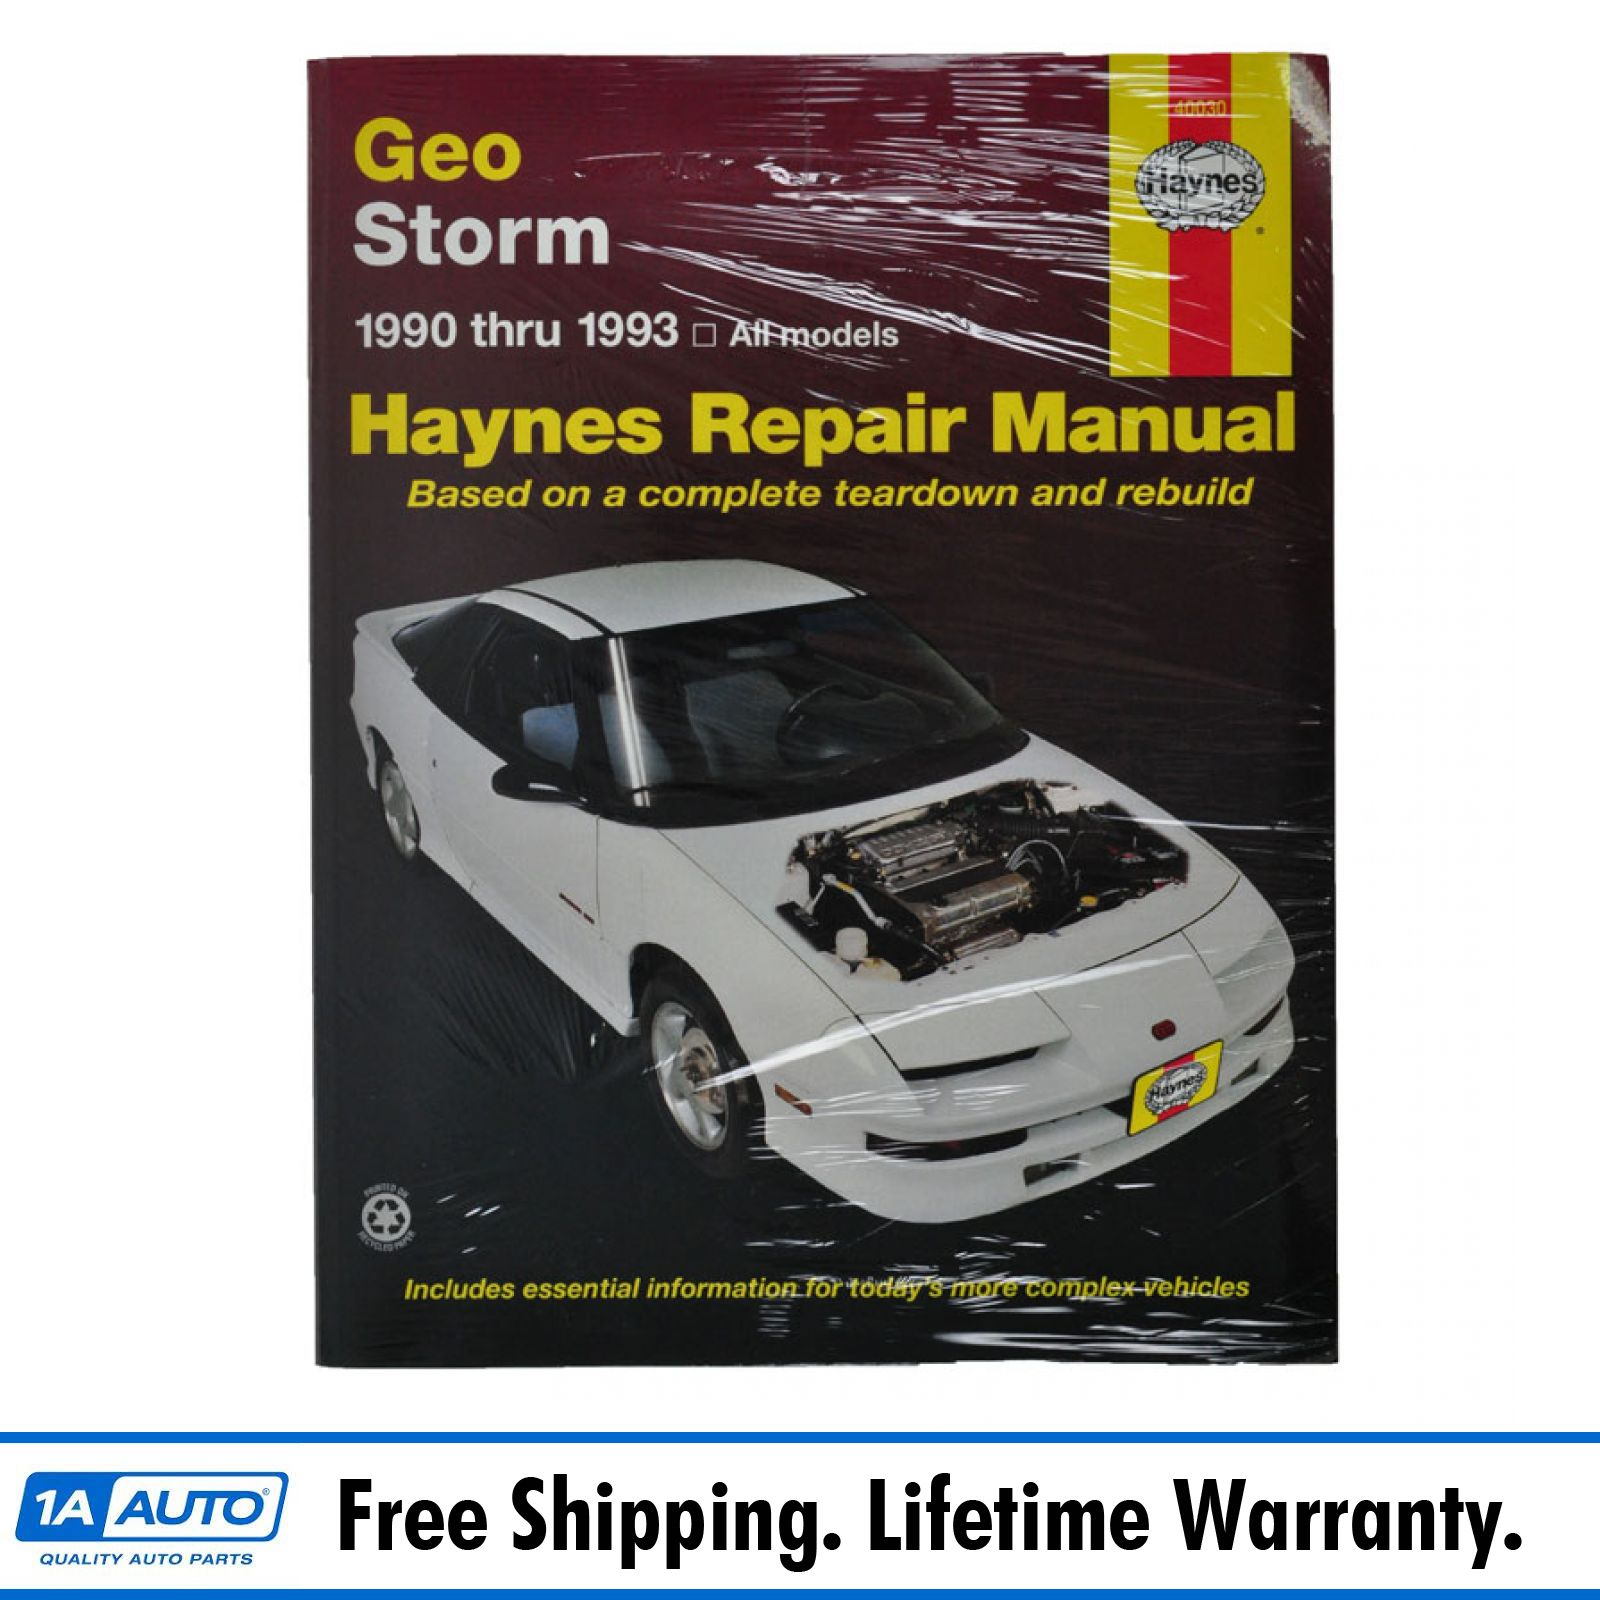 1990-93 Geo Storm Haynes Repair Manual